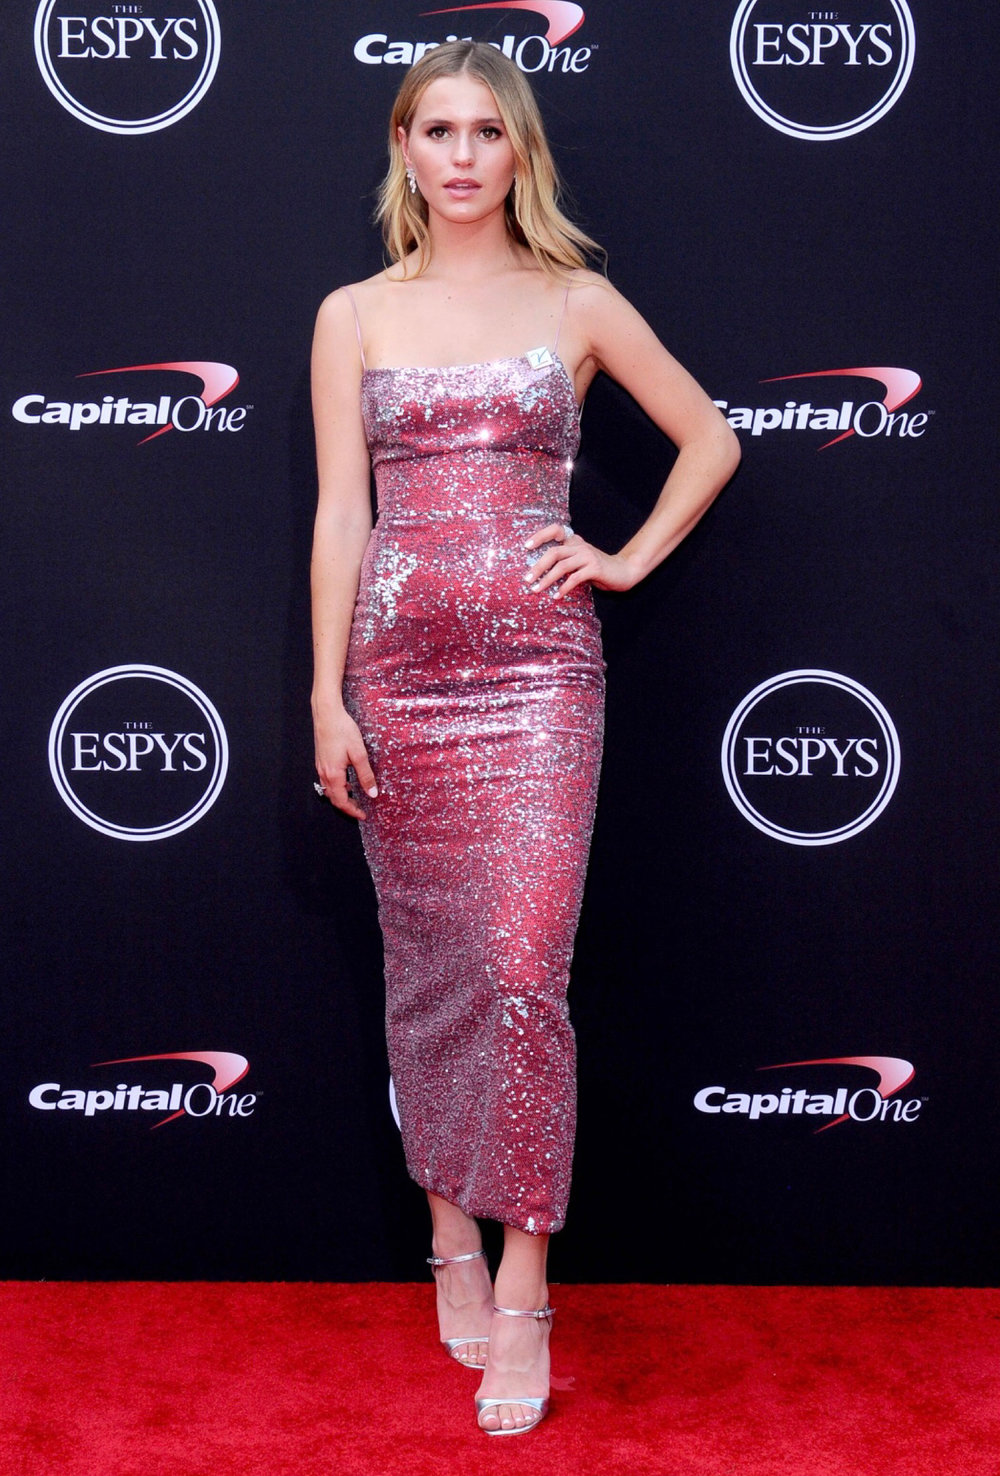 Mallory Edens for 2018 ESPYS / Styled by Natalie Hoselton / Red Carpet